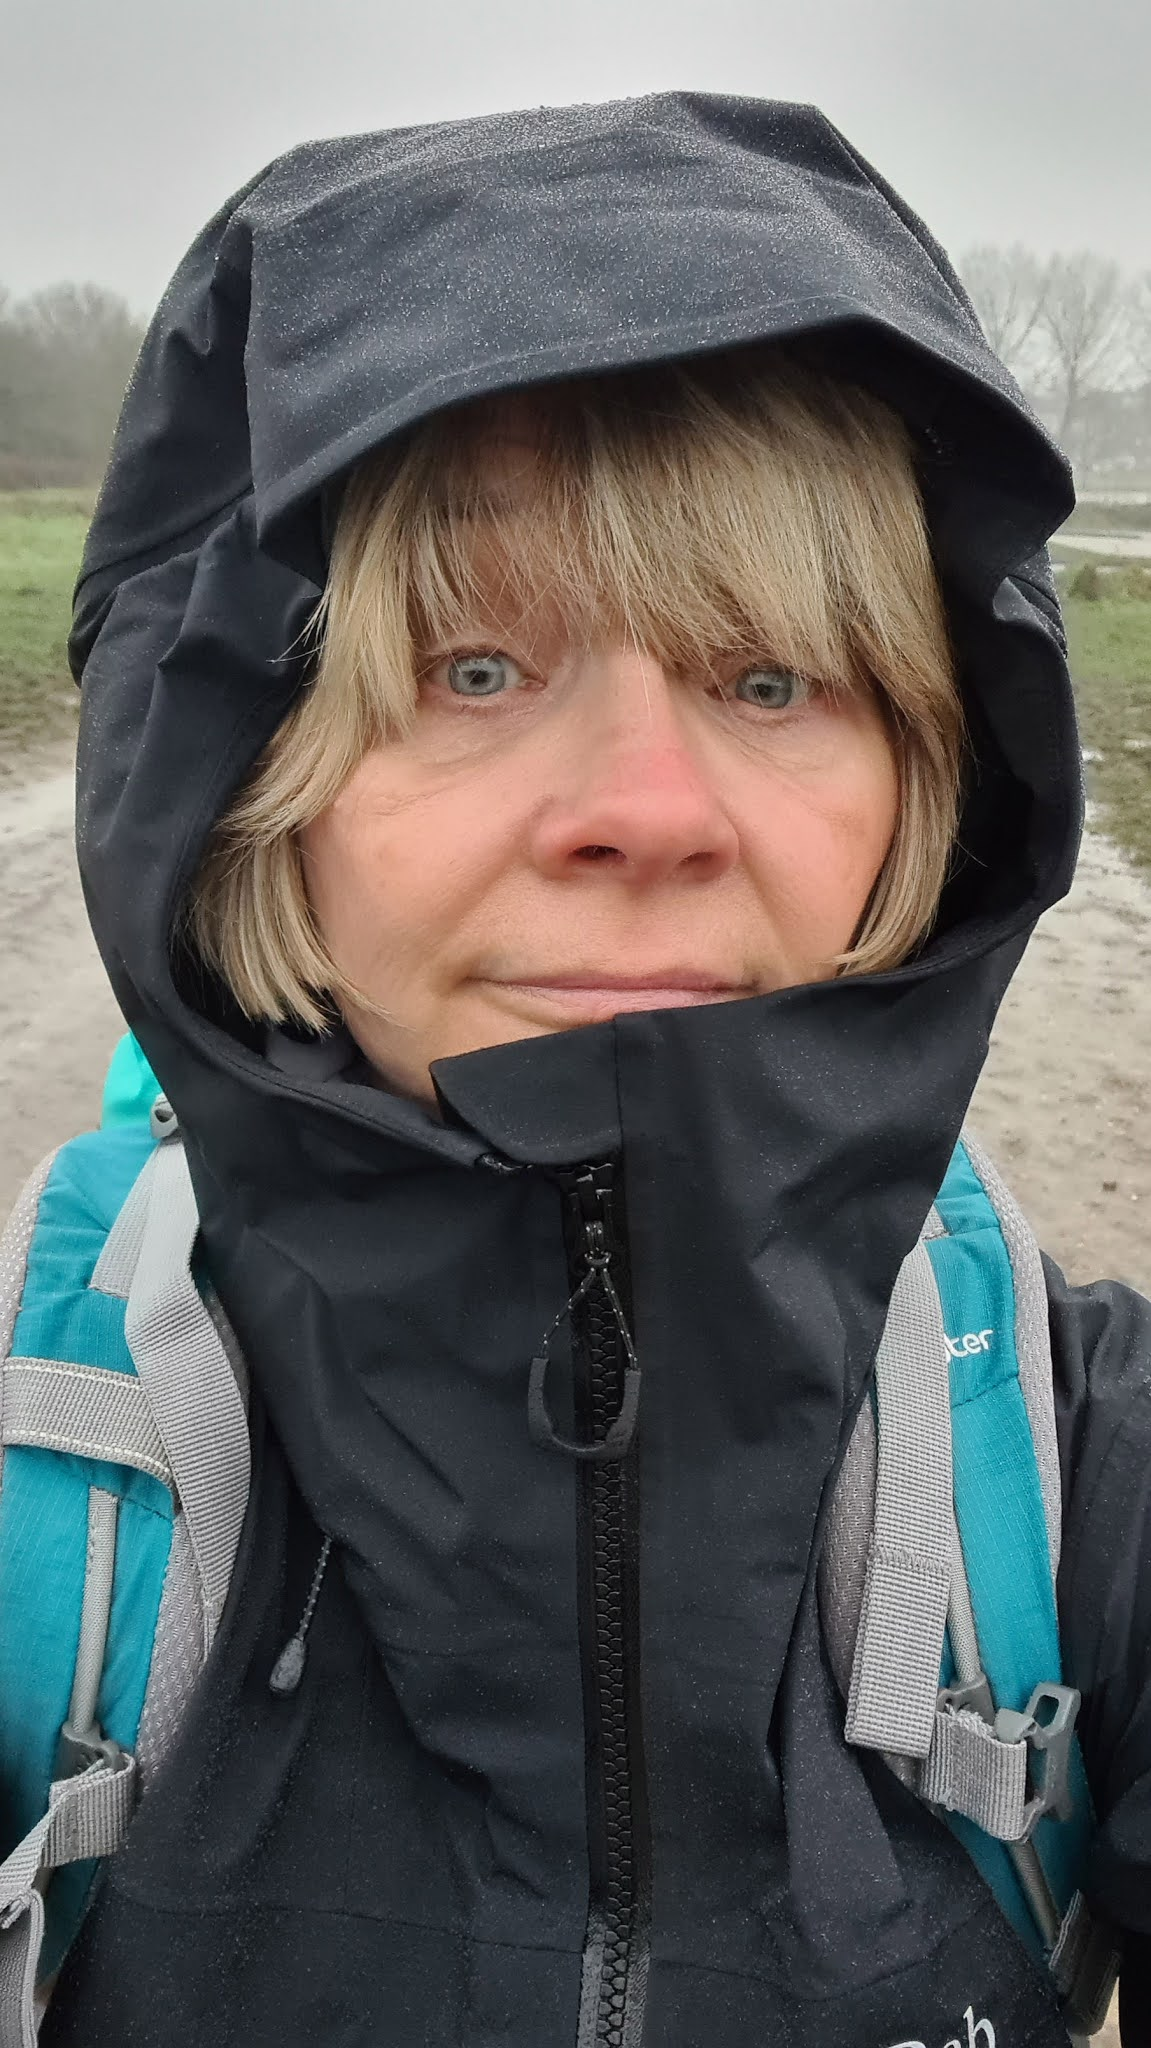 Ready for bad weather walking: Gail Hanlon from blog Is This Mutton wearing Rab waterproof anorak